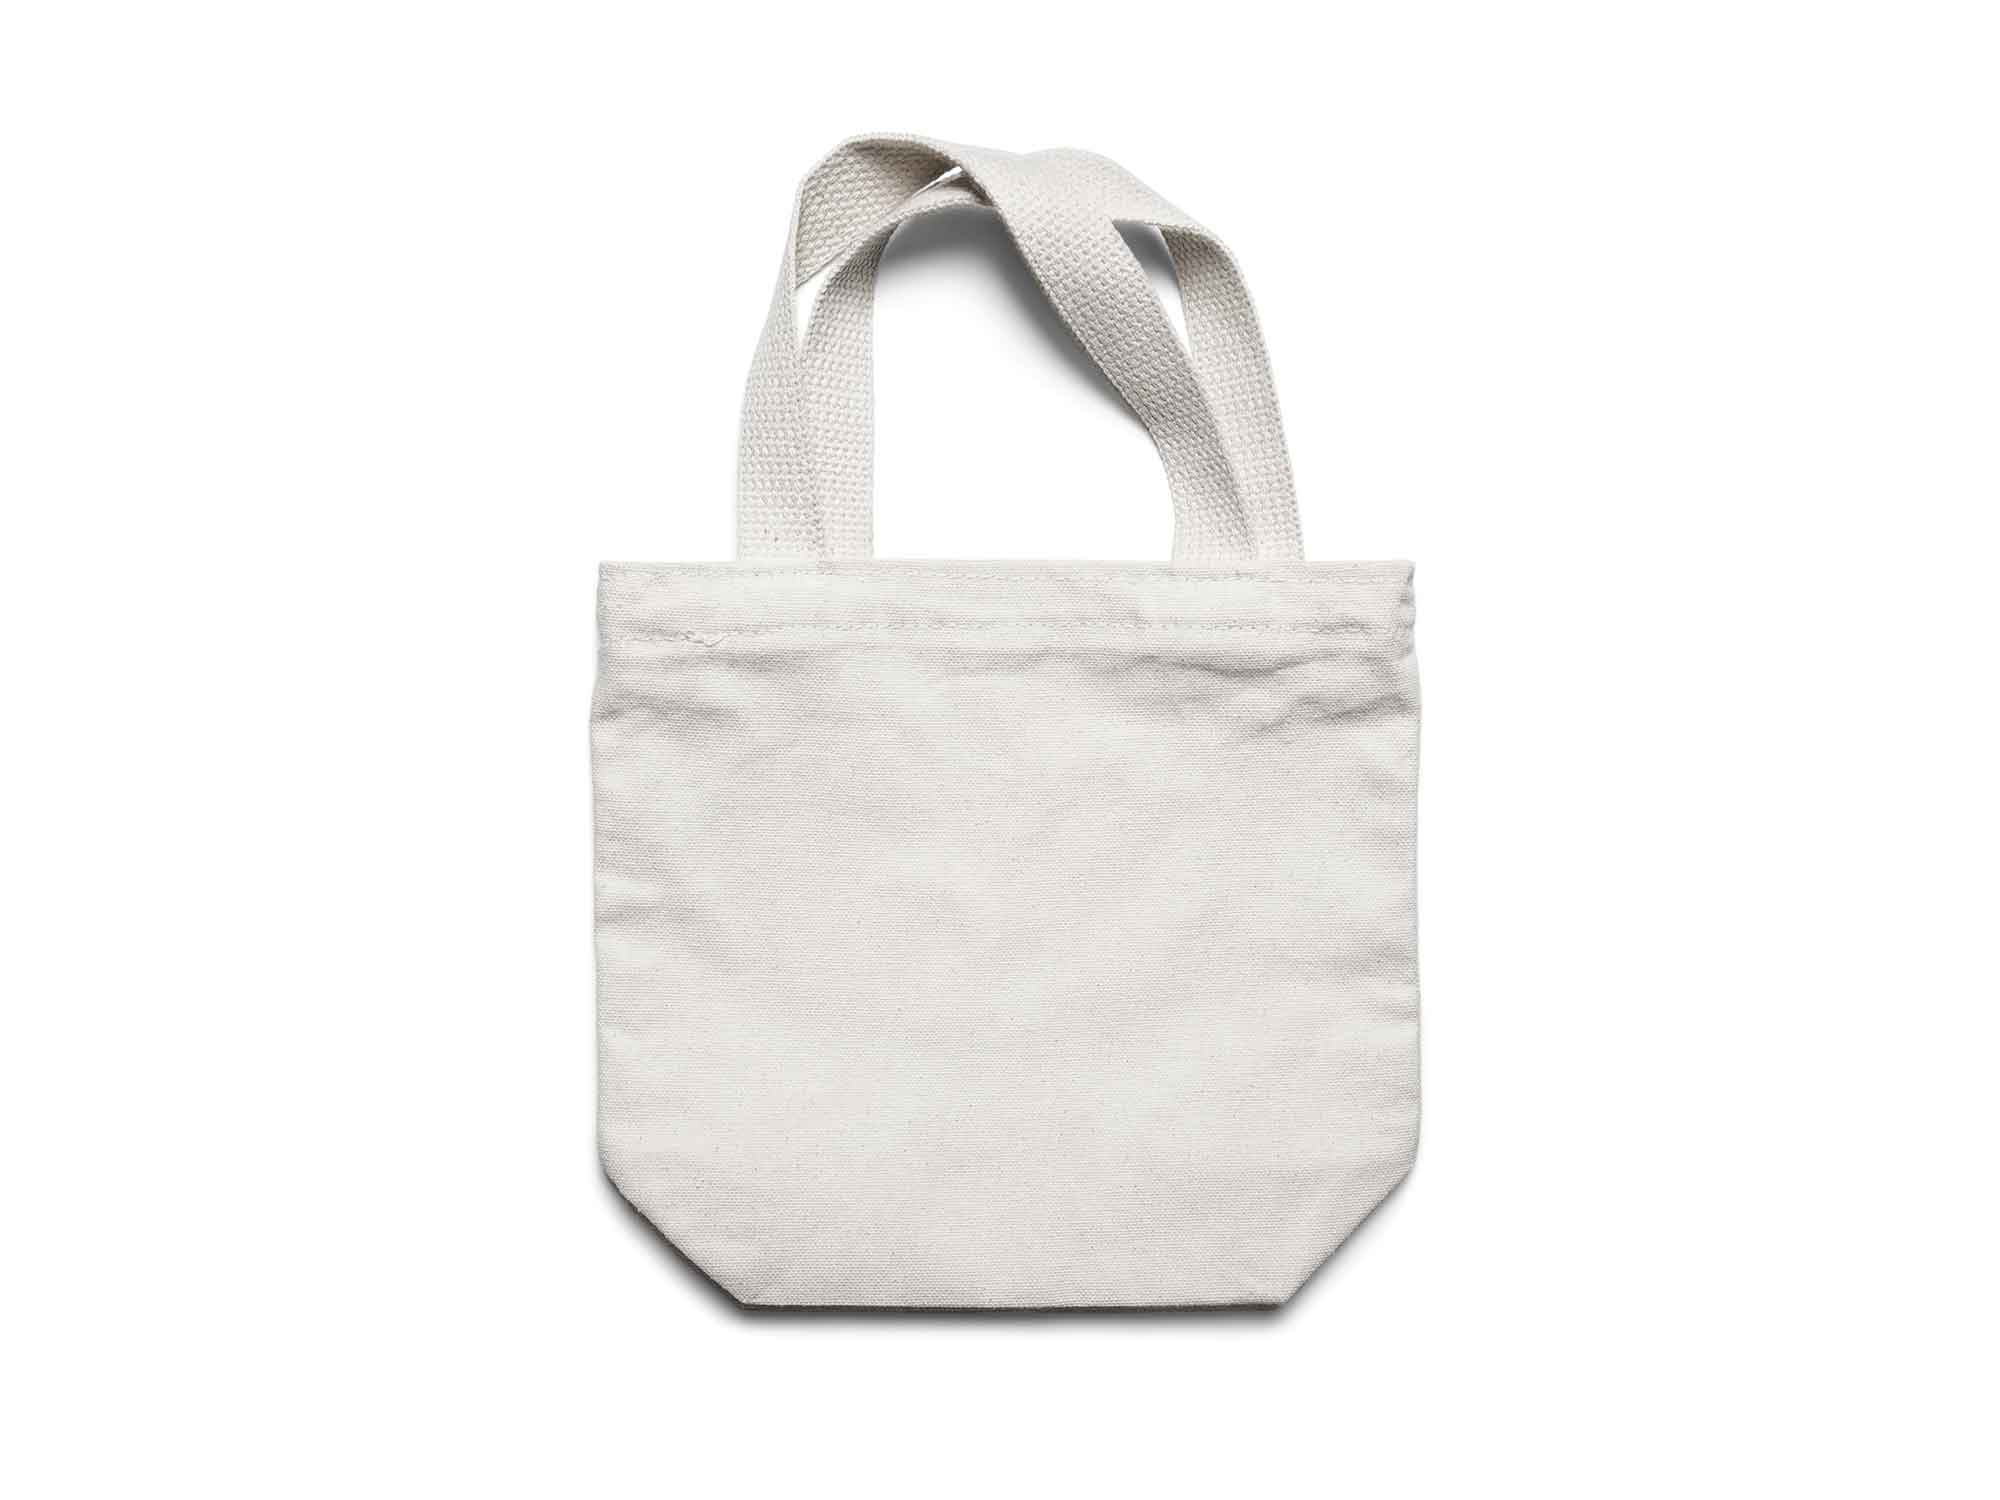 Small Canvas Tote Bag Mockup 2